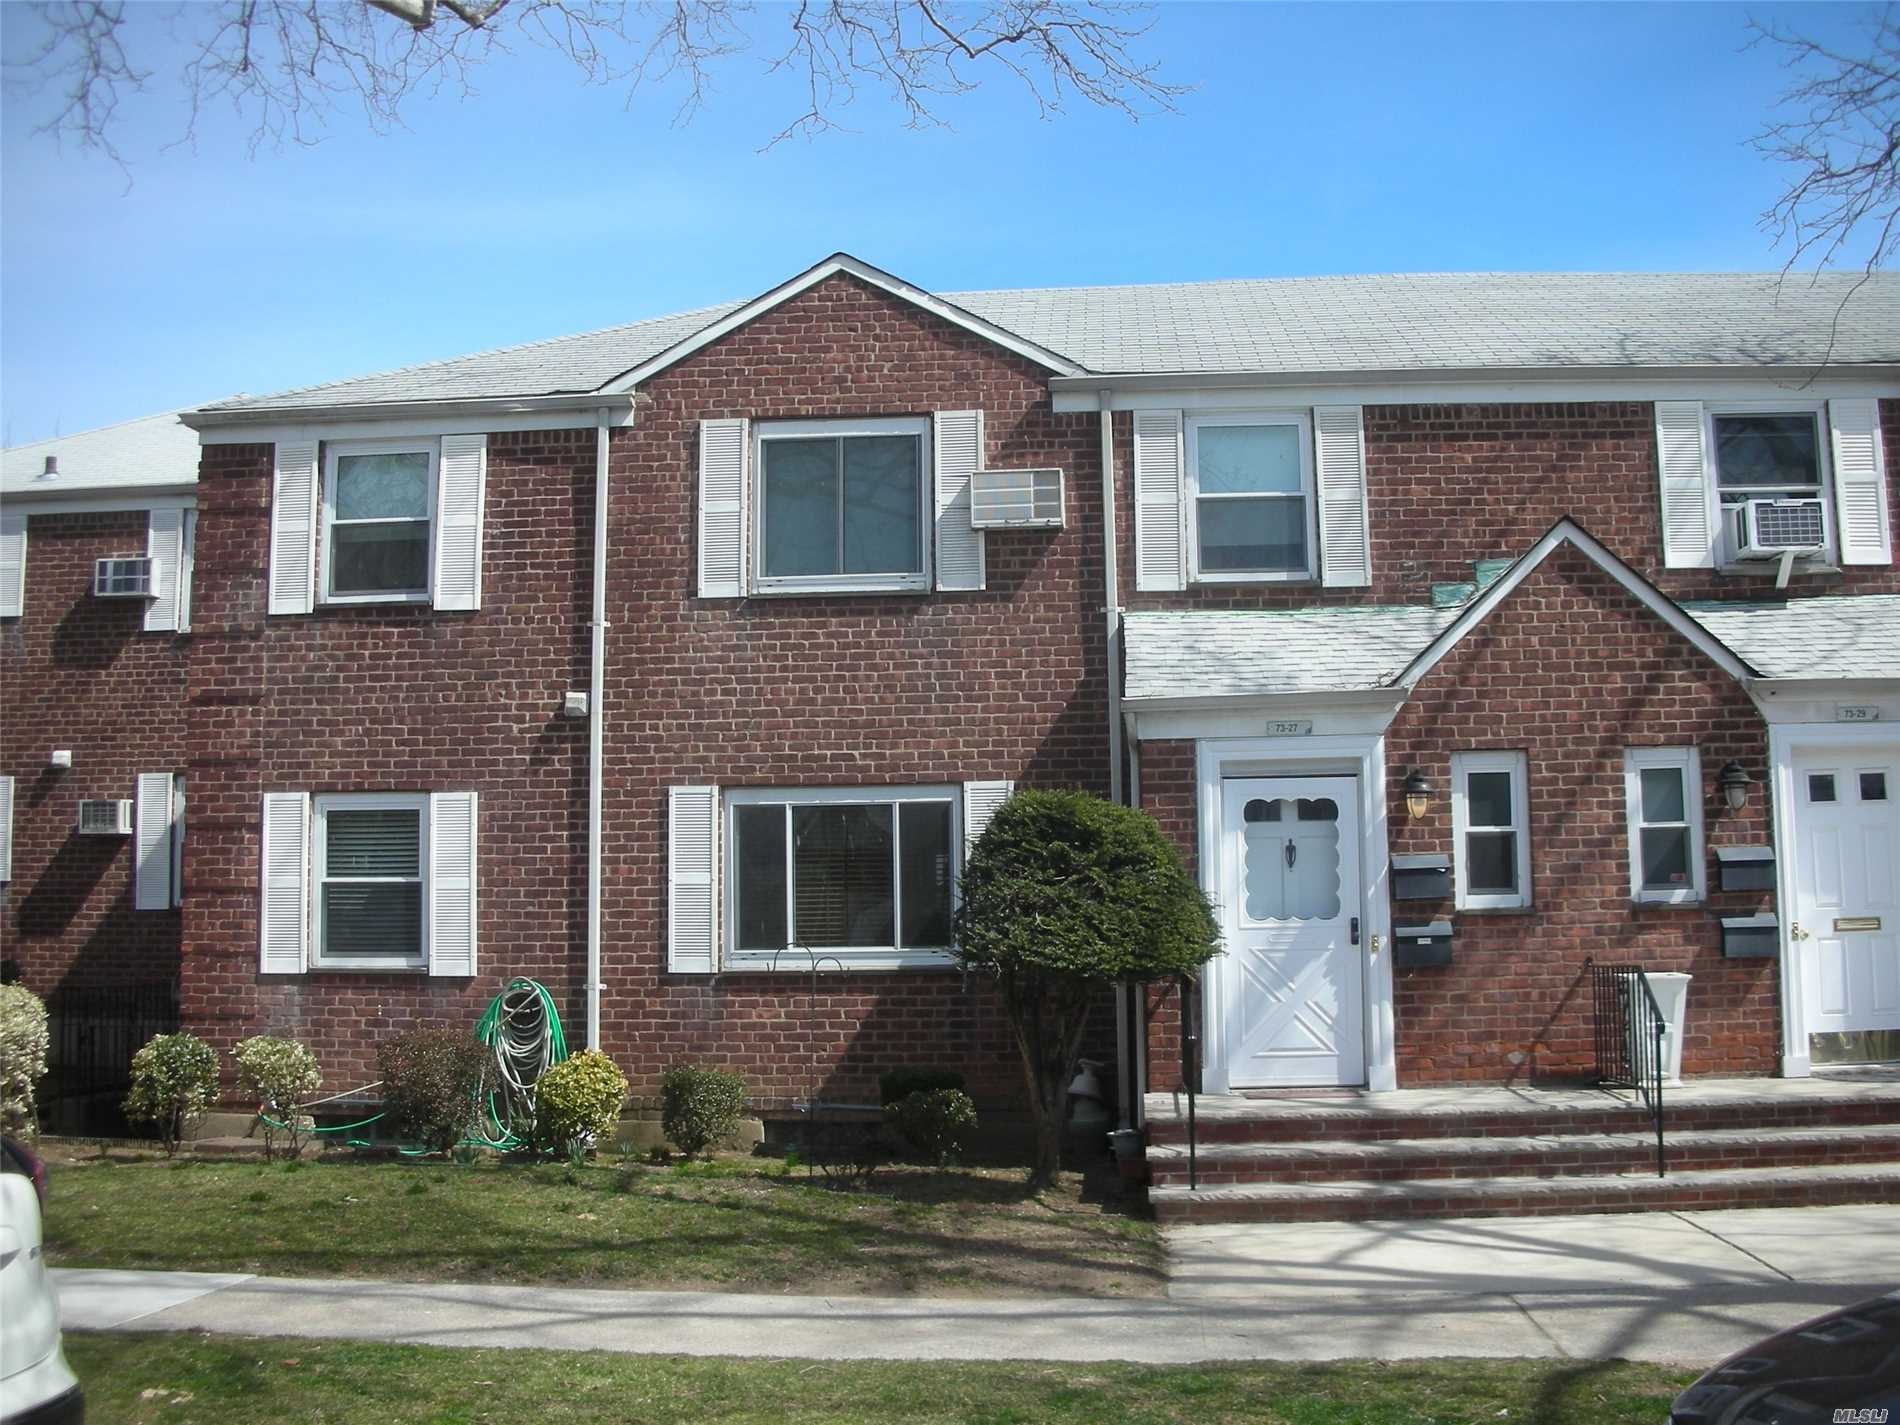 Upper Large 2BR G, Oak kitchen, full sized washer and dryer, 2 wall air conditioners, Pull down stairs to large storage attic, just 1 block to PS186 elementary and the Queens Farm.